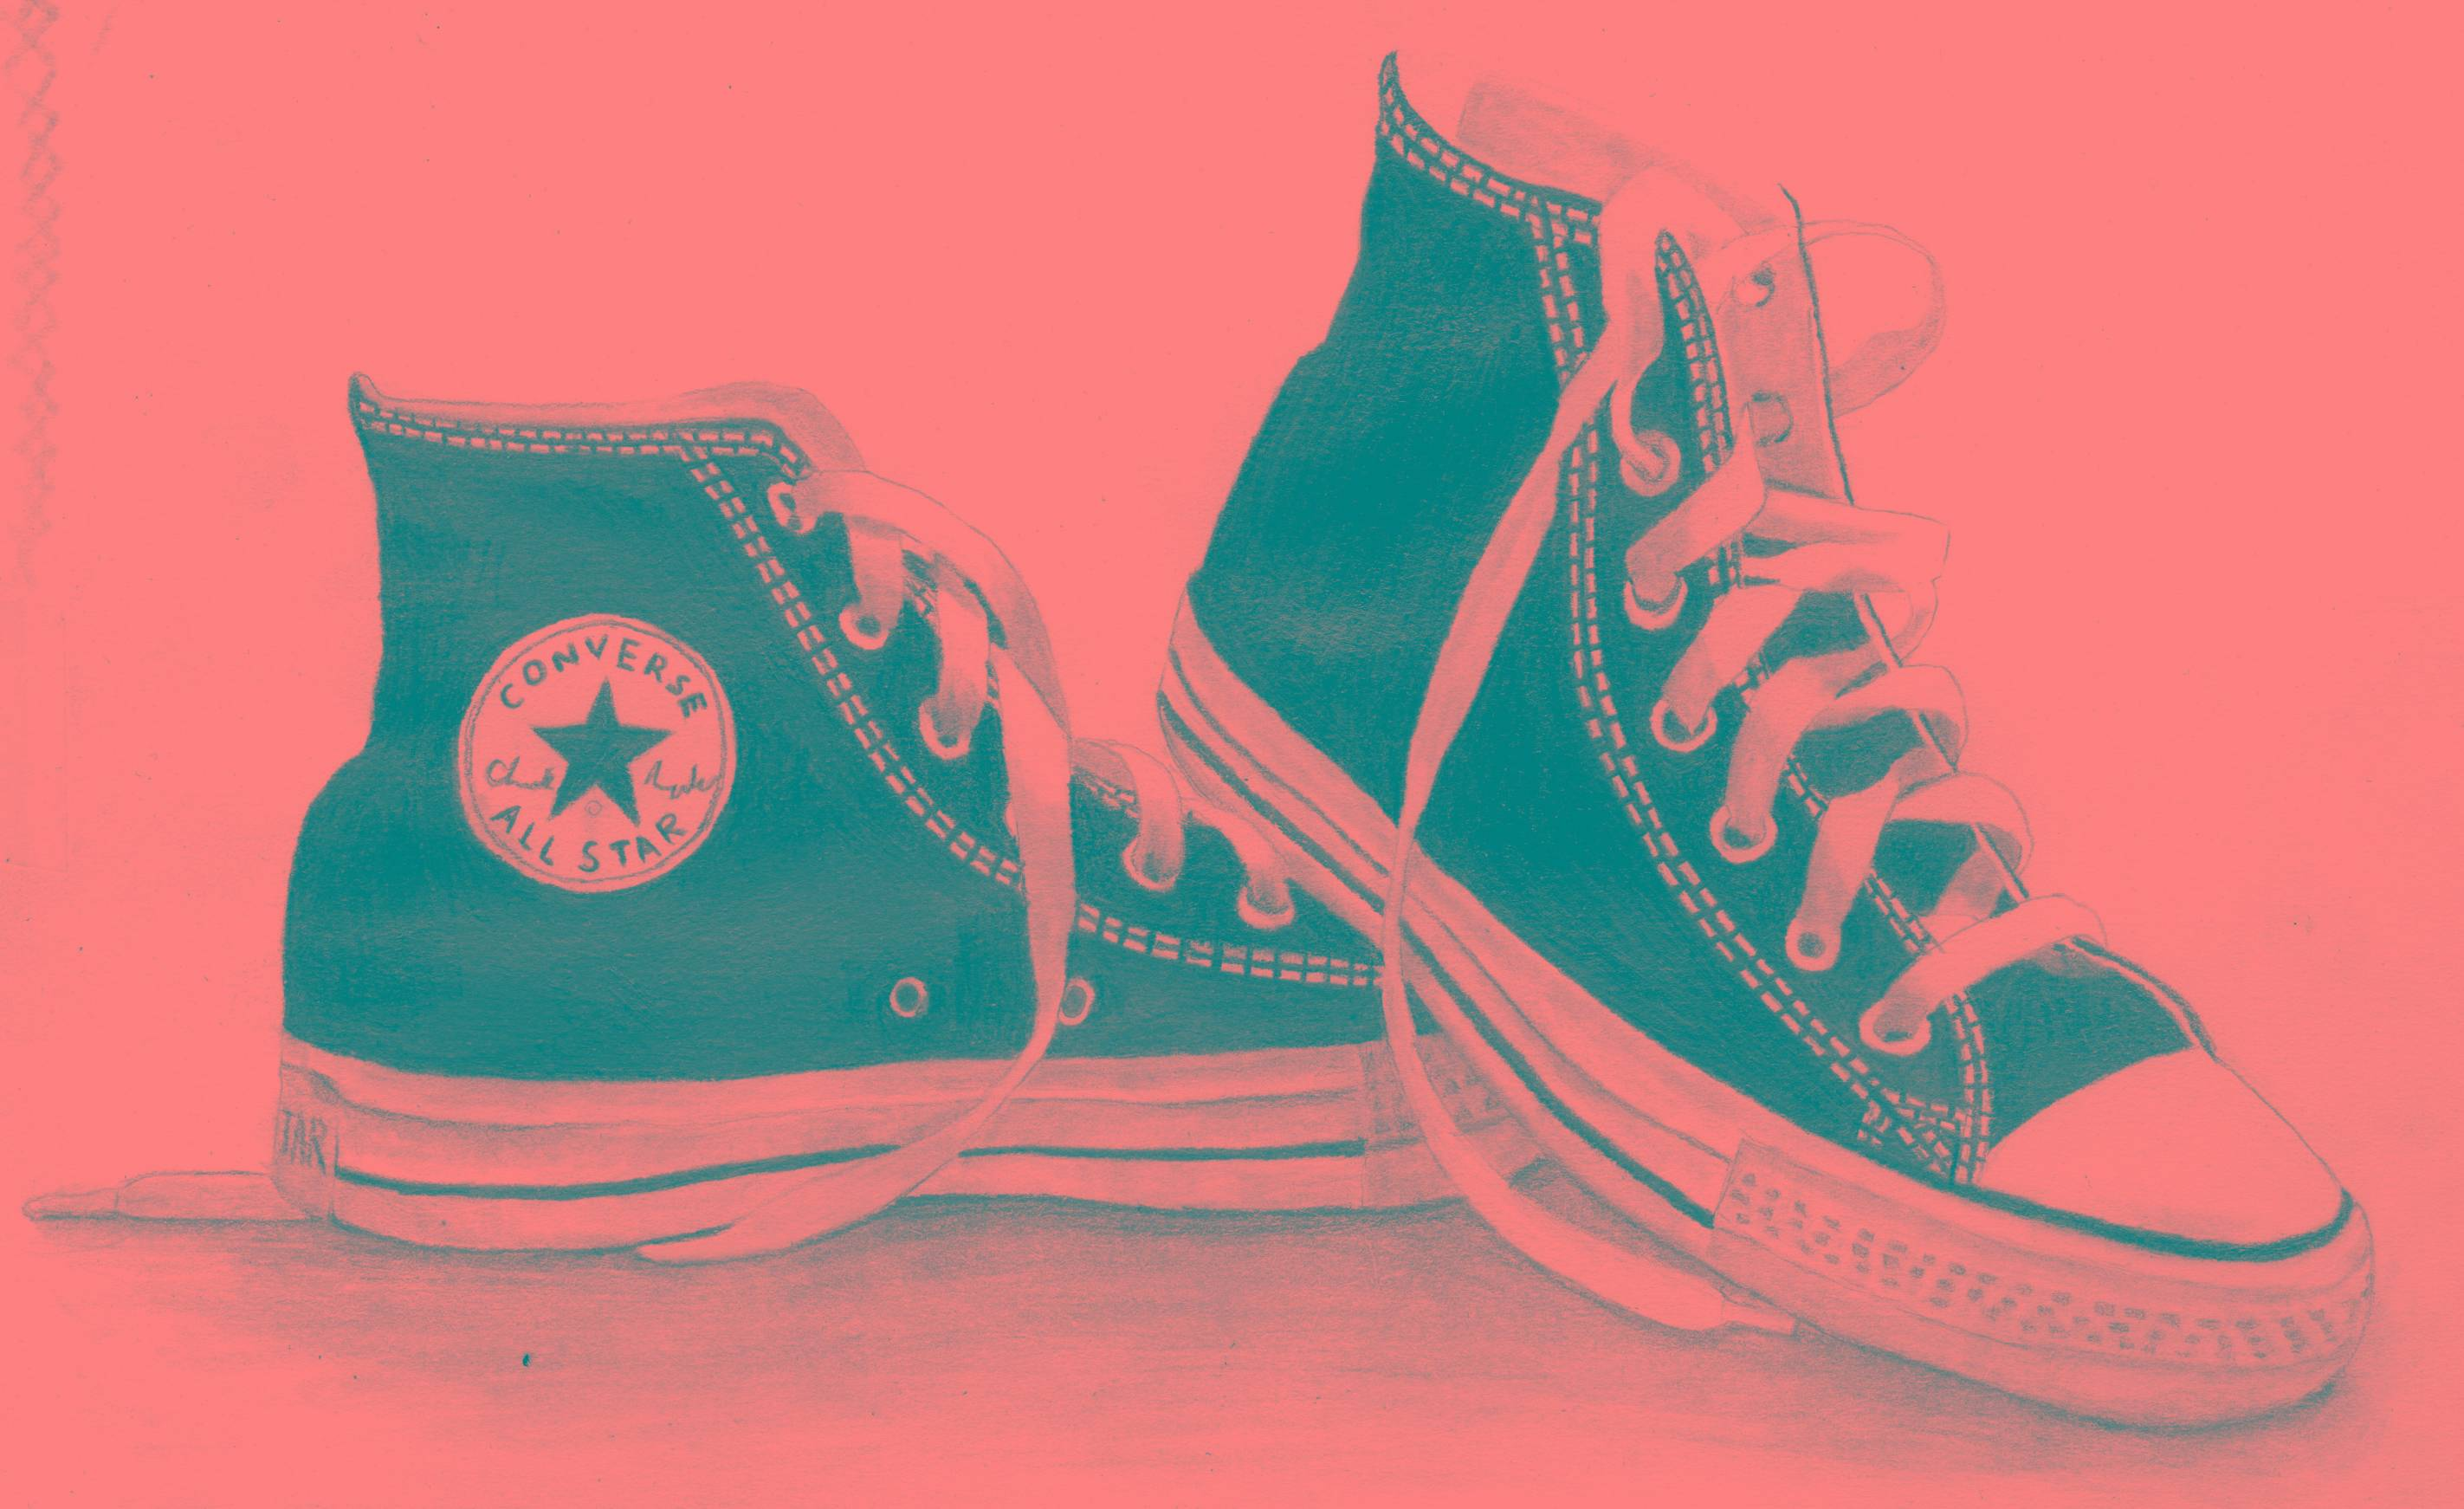 Converse All Star Wallpapers - Wallpaper Cave  Converse All St...